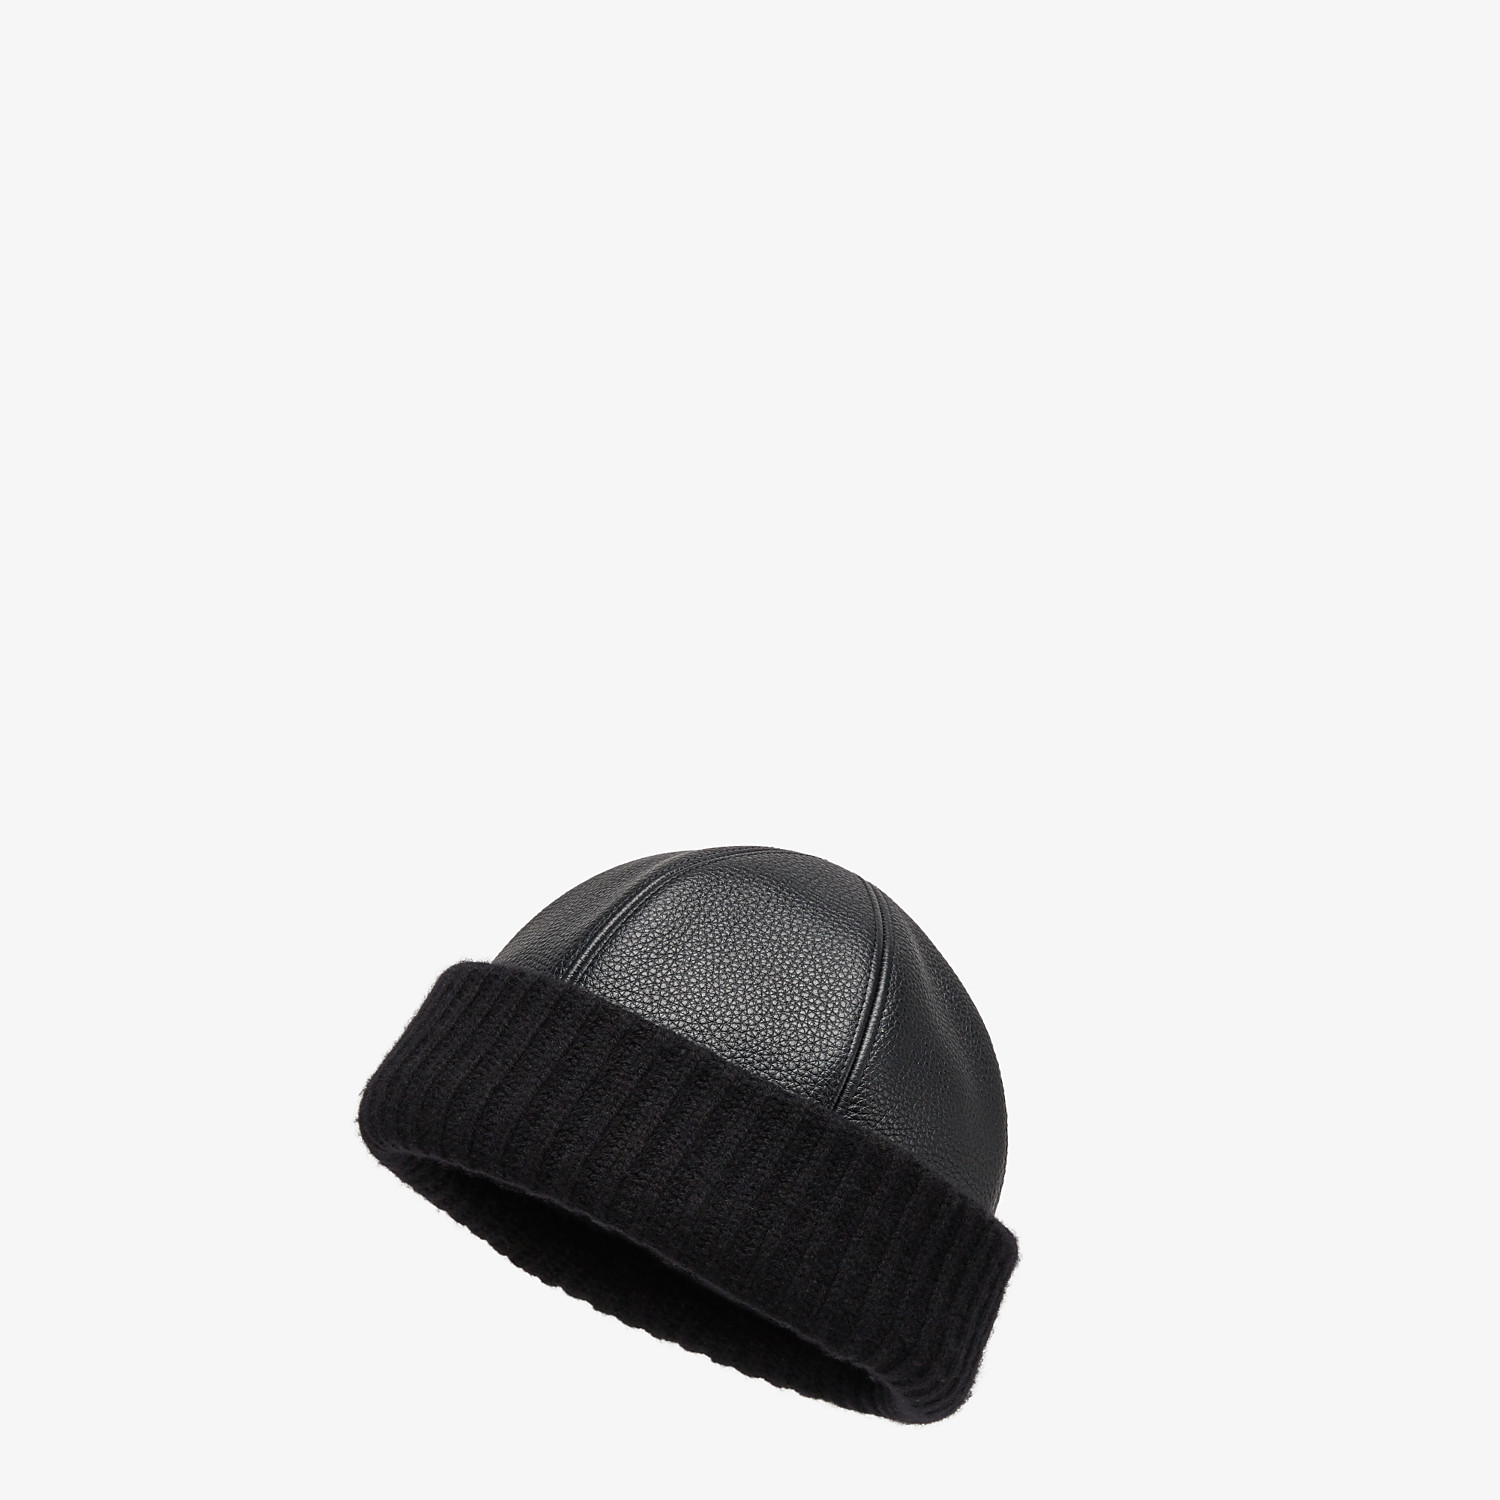 FENDI HAT - Black leather and cashmere beanie - view 1 detail